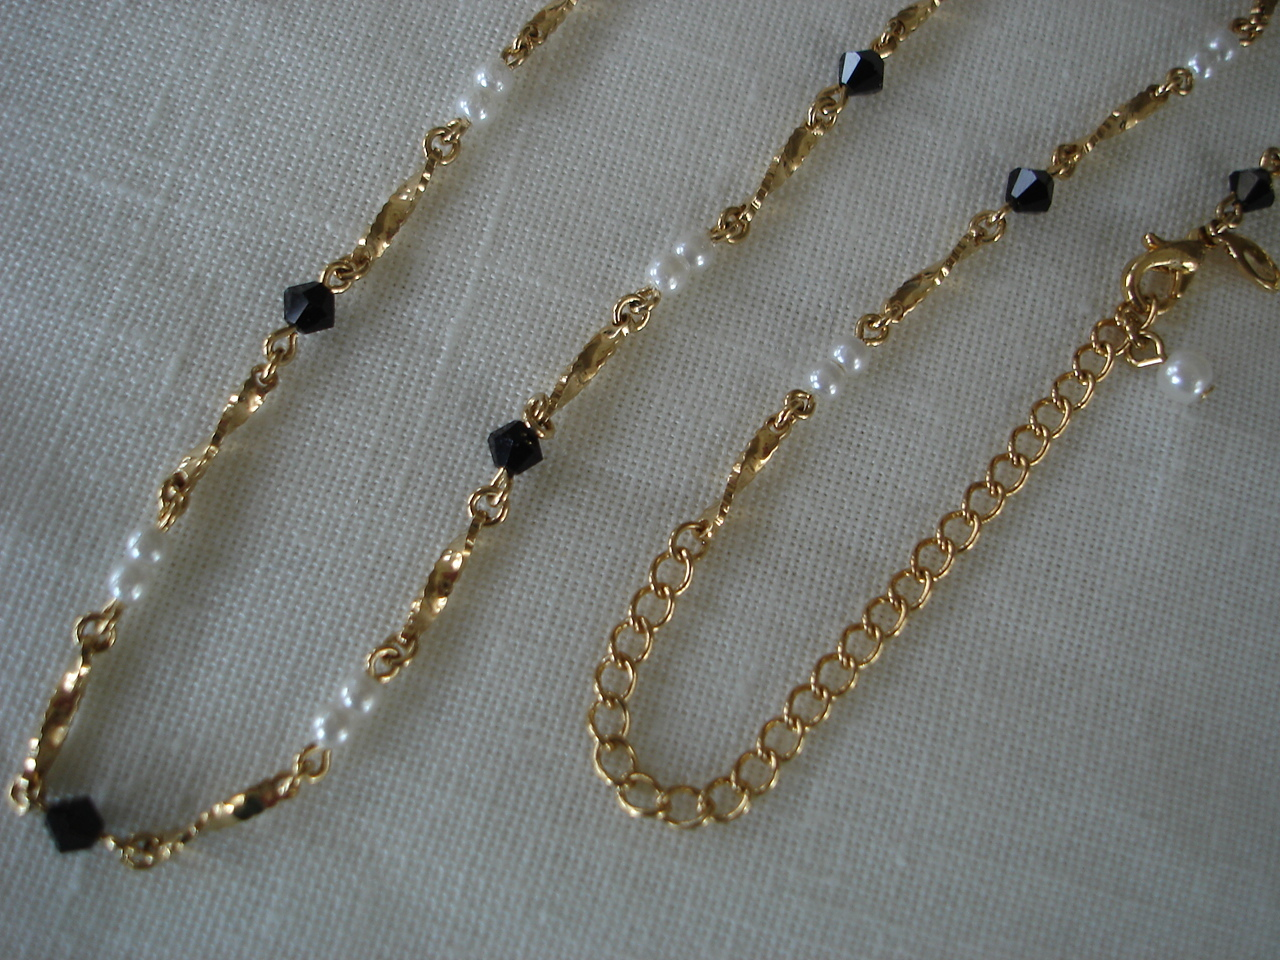 Goldtone Necklace, Simulated Pearl, Black Bead, Signed